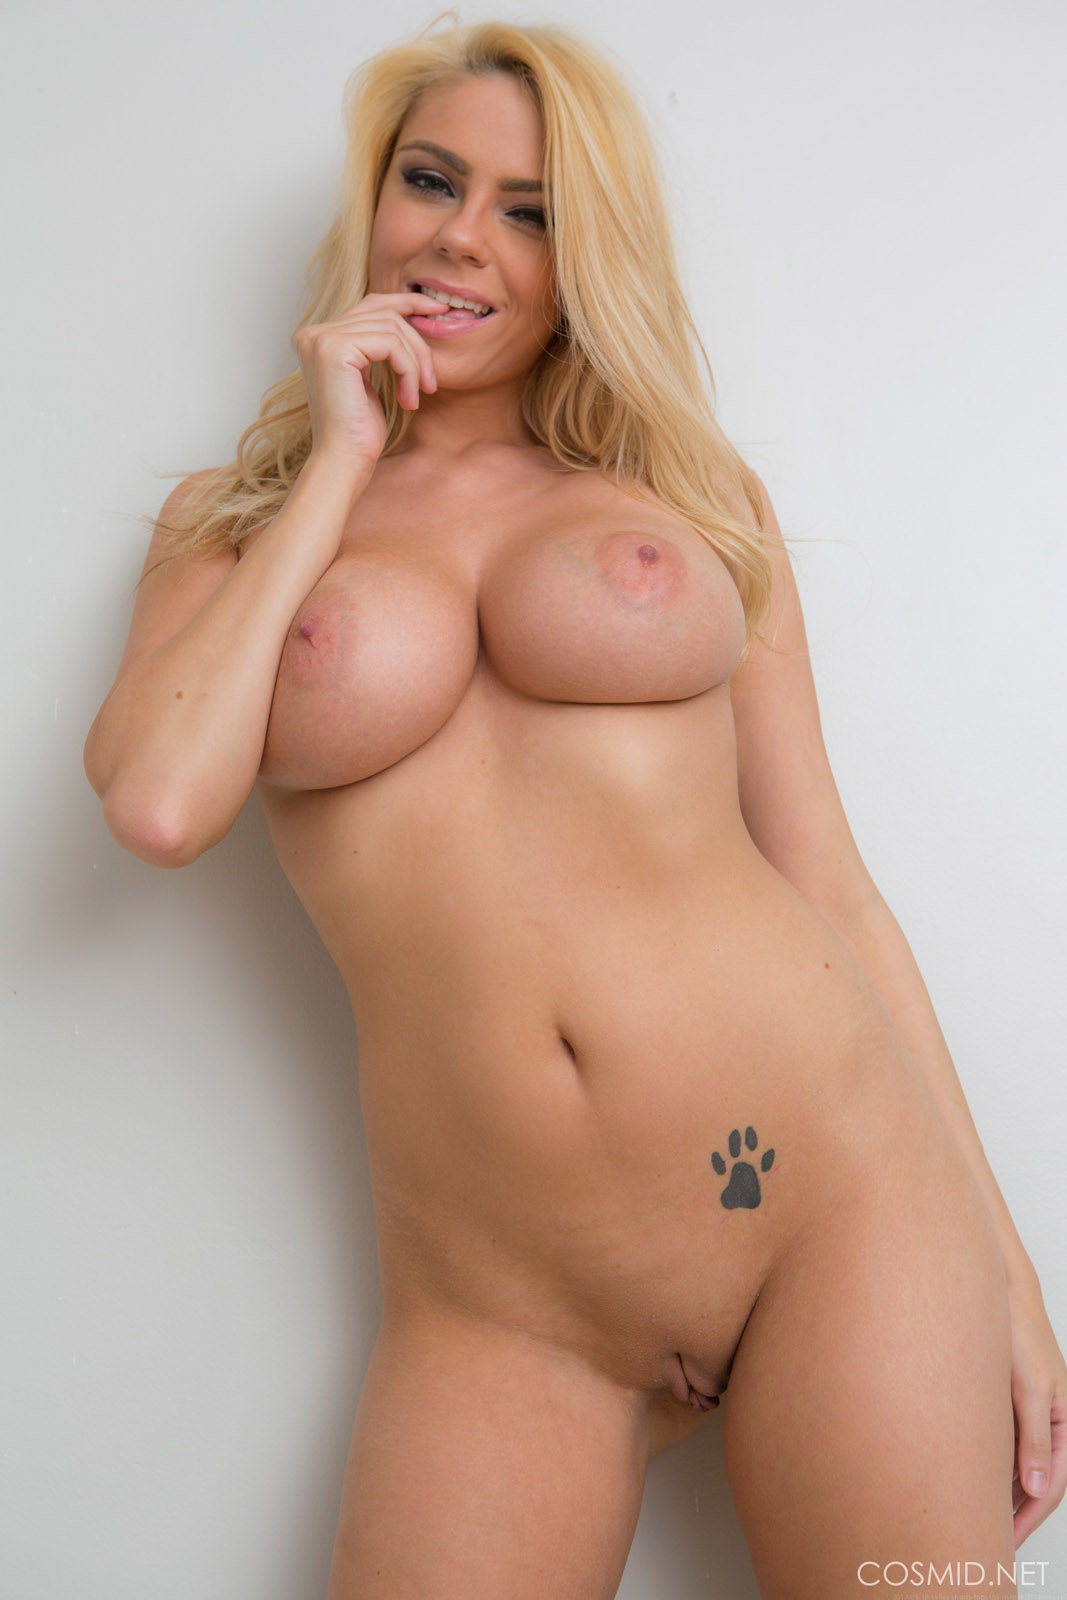 hairless pussy no tits